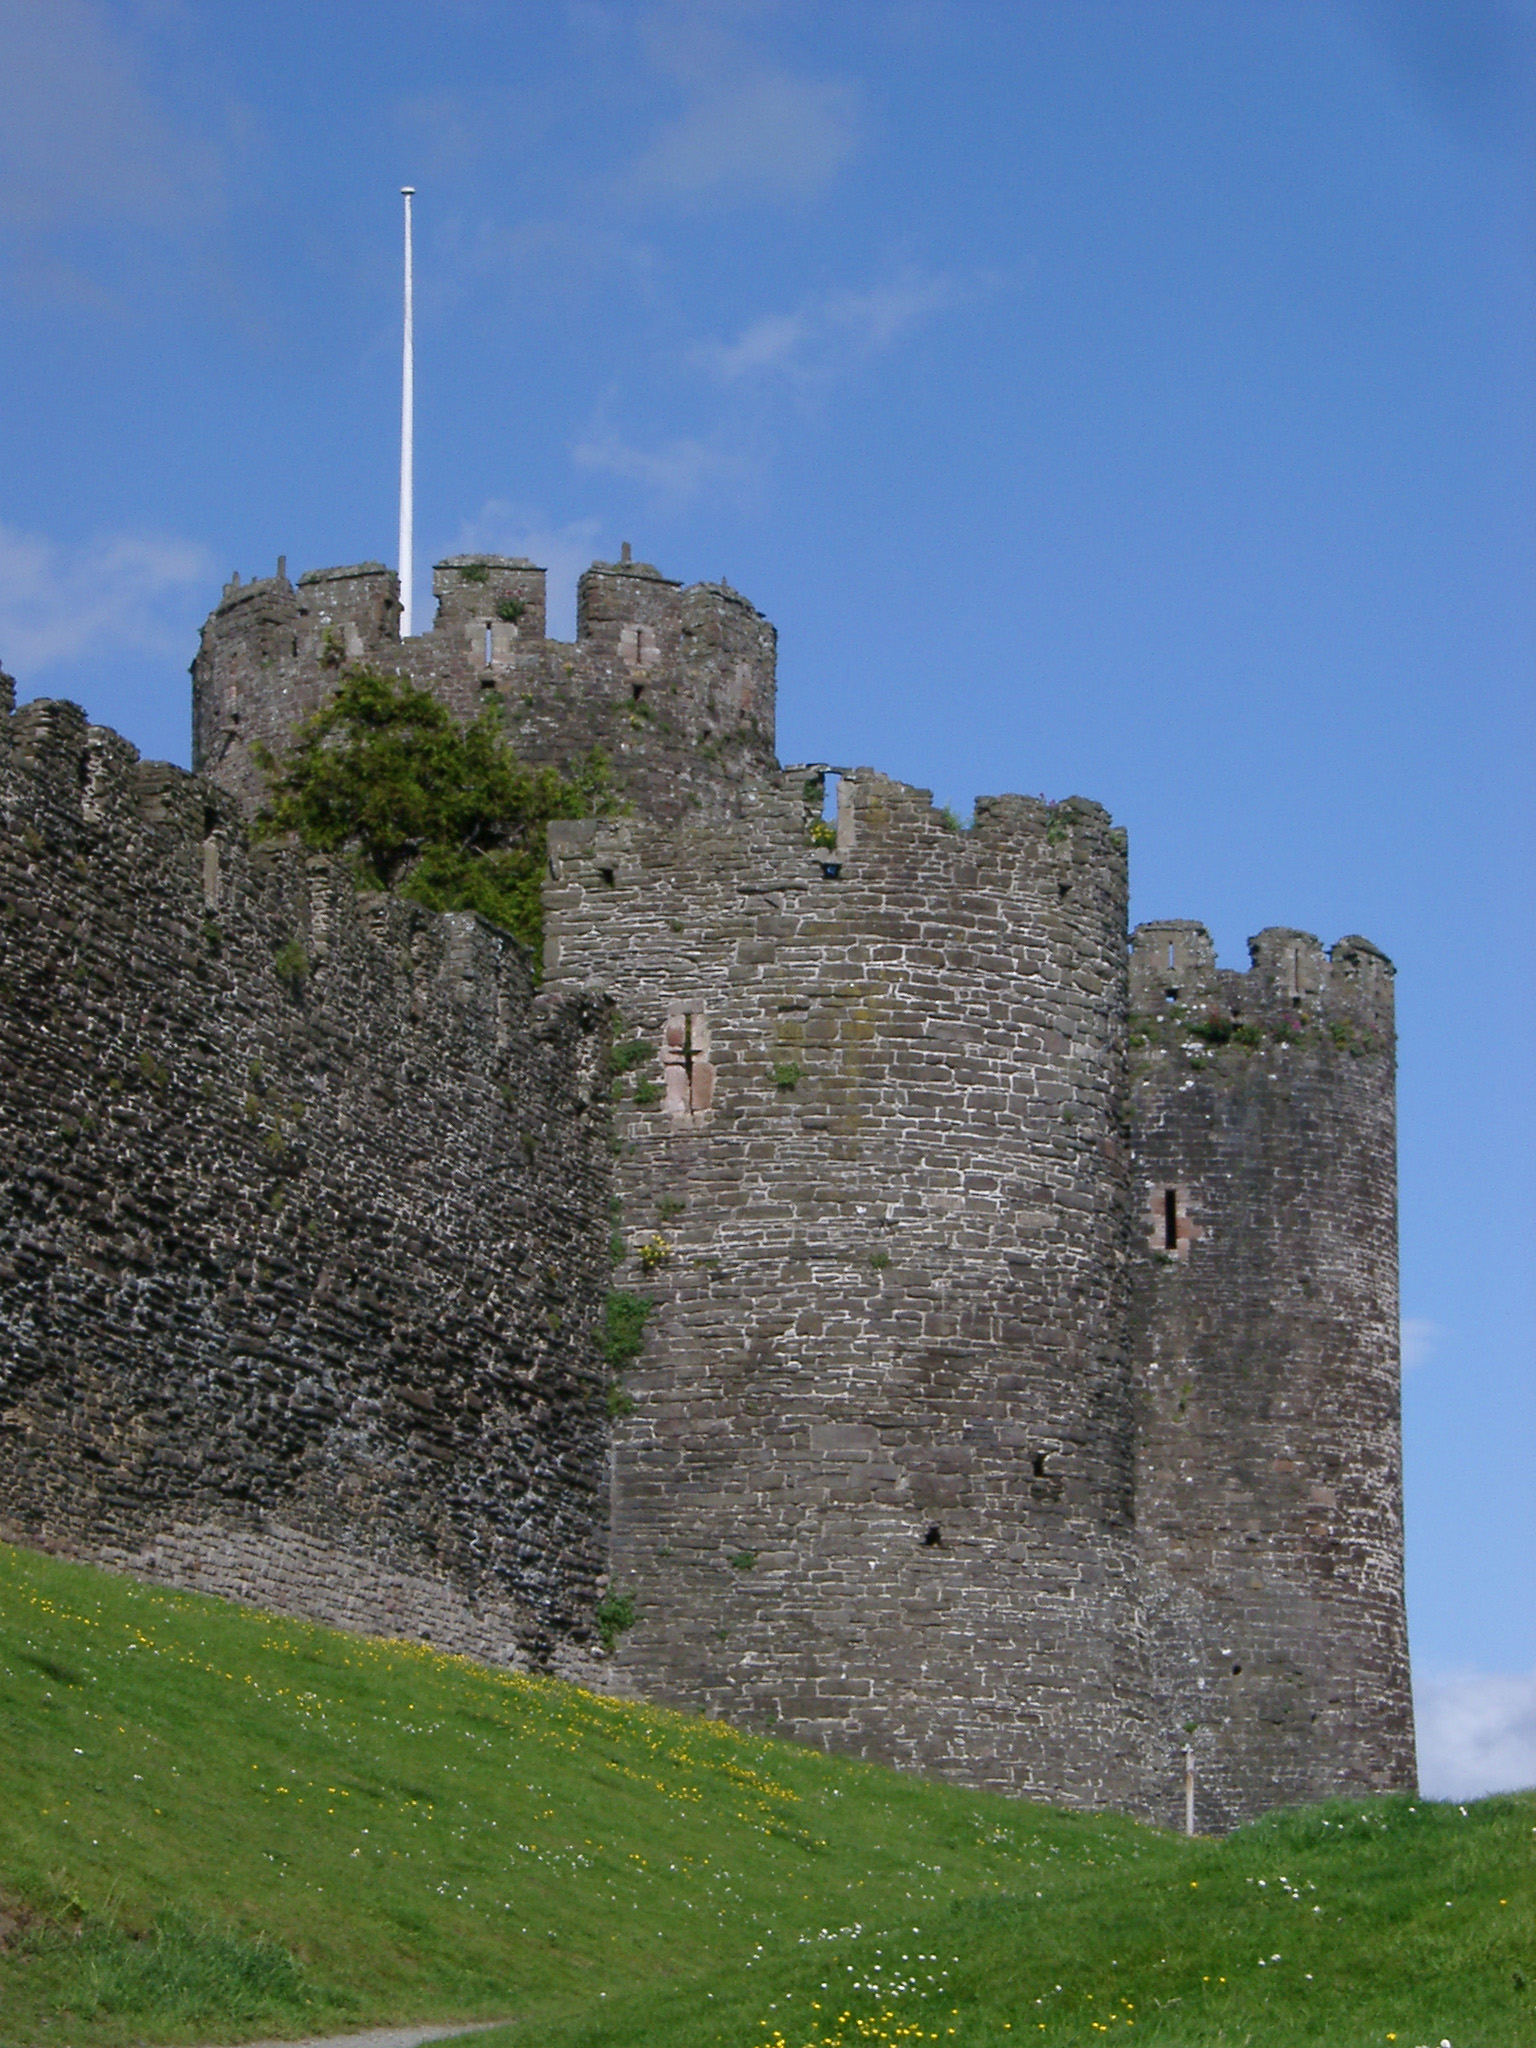 Historic Conwy Tower on Grassy Landscape in Conwy, North Coast of Wales on a Light Blue Sky Background.